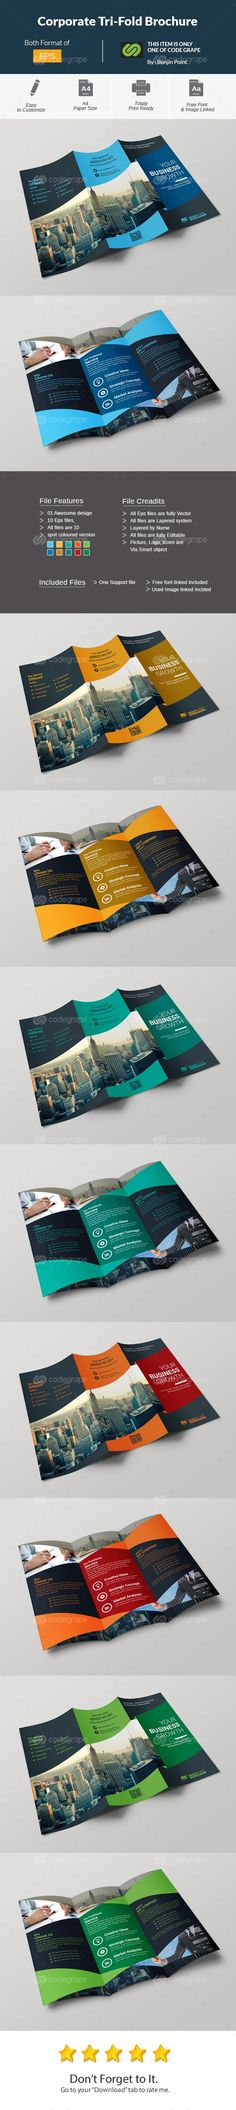 Corporate Tri-Fold Brochure on @codegrape. More Info: https://www.codegrape.com/item/corporate-tri-fold-brochure/10829